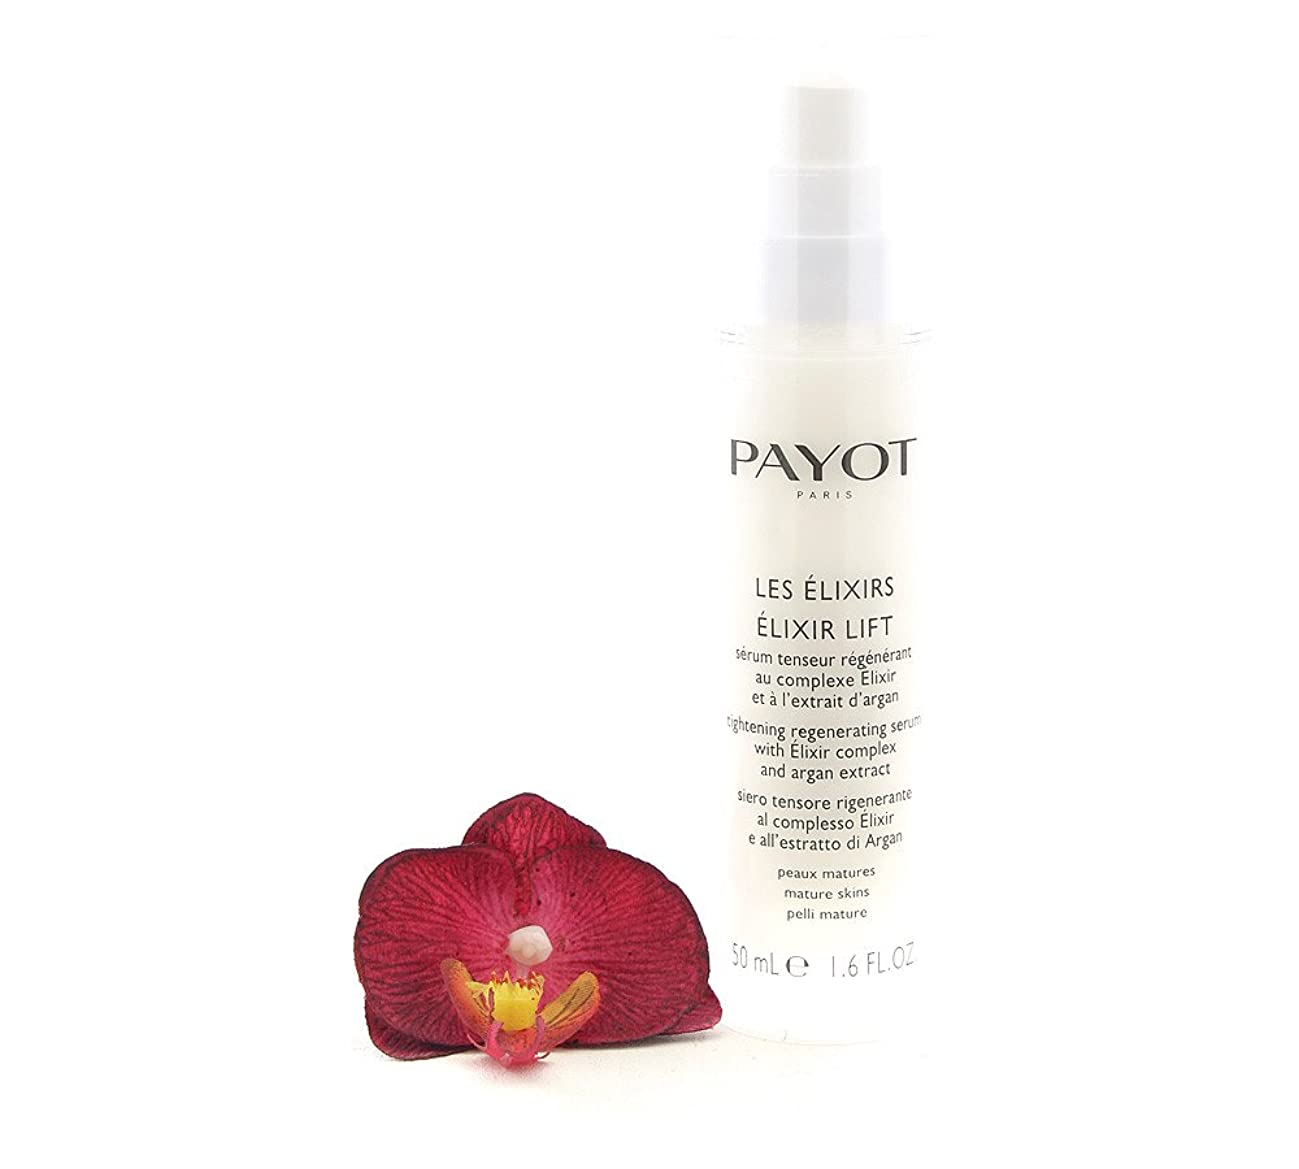 パトロールシロクマ間欠PAYOT ELIXIR LIFT Tightening Regenerating Serum 50 ml / 1.6 Fl.oz. - SALON SIZE